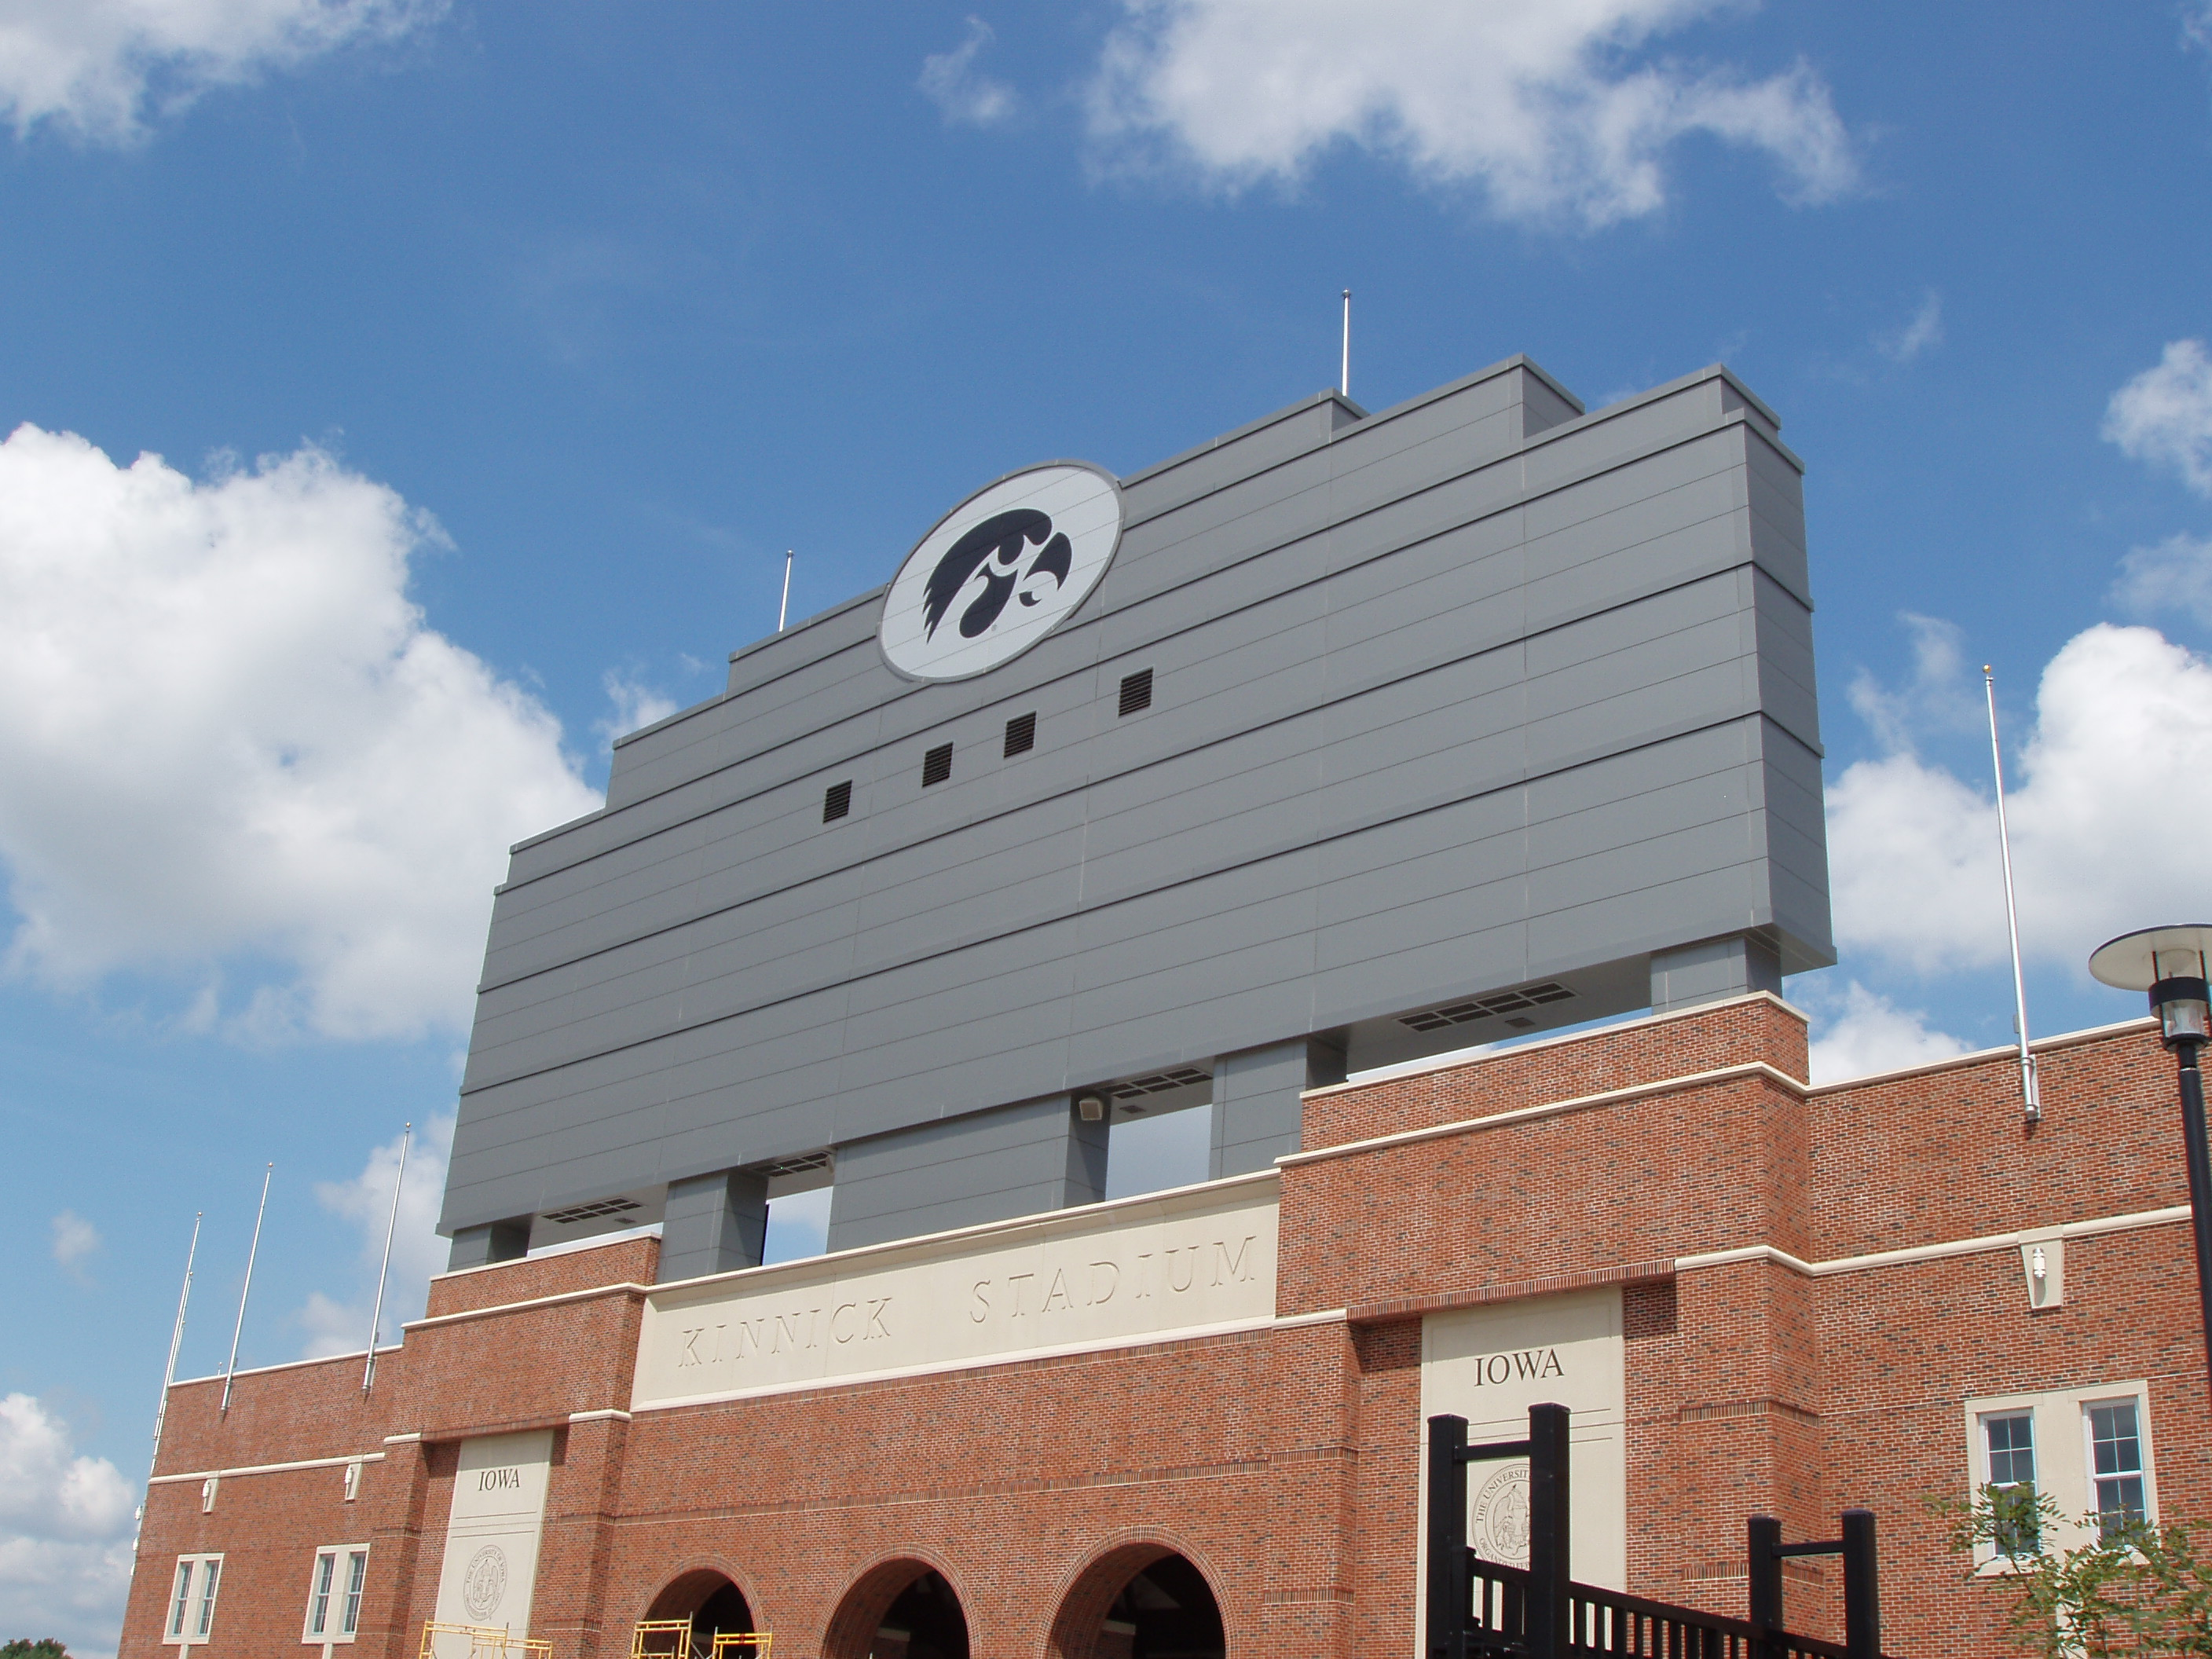 University of Iowa Kinnick Stadium Scoreboard (Iowa City)